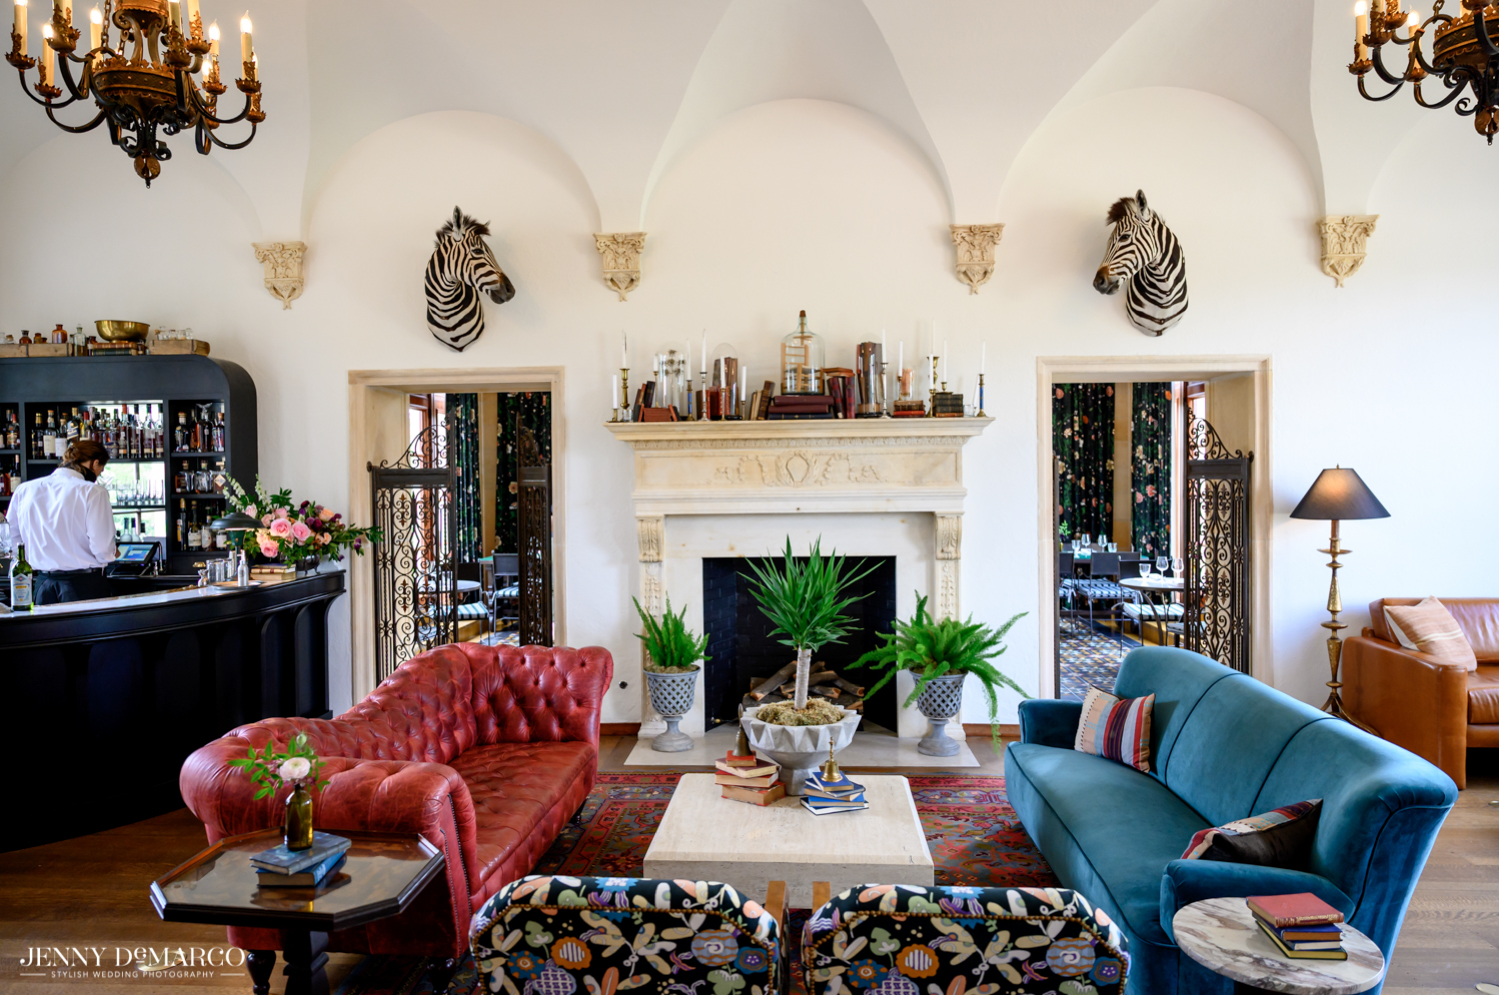 mansion living room in the Commodore Perry hotel